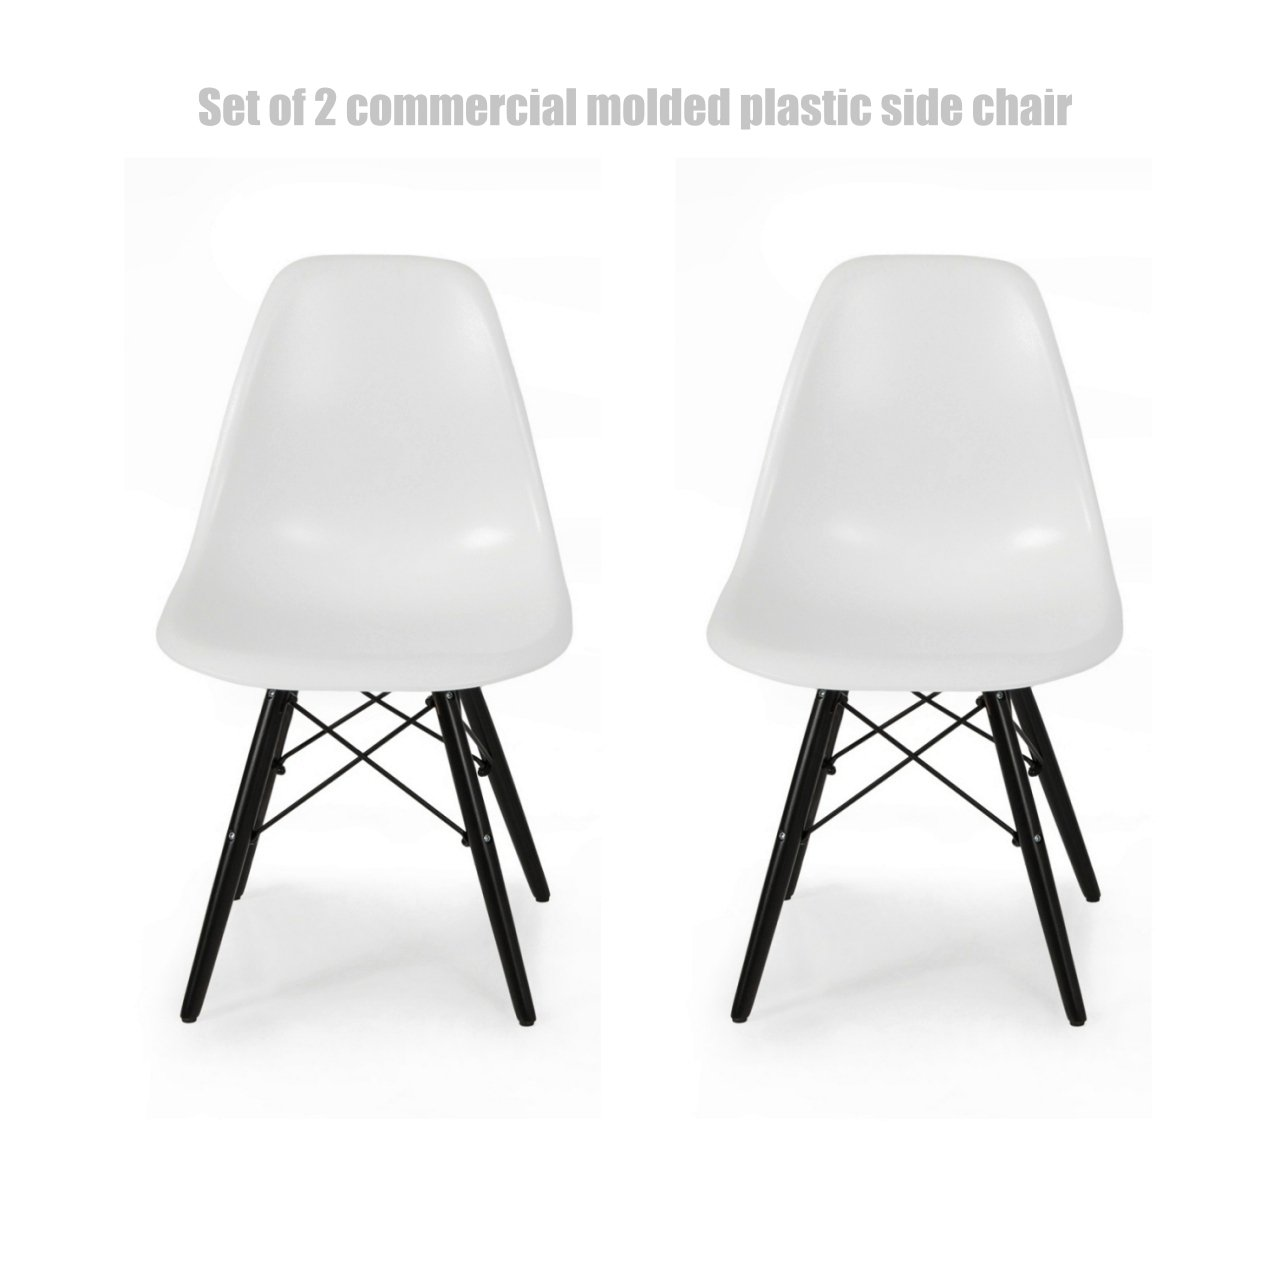 Classic Vintage Style Dining Chair Molded Plastic Flexible Backs Support Deep Seat Pockets Straight Wooden Dowel Legs Innovative Side Chair - Set of 2 White/Black Wood Base #1444